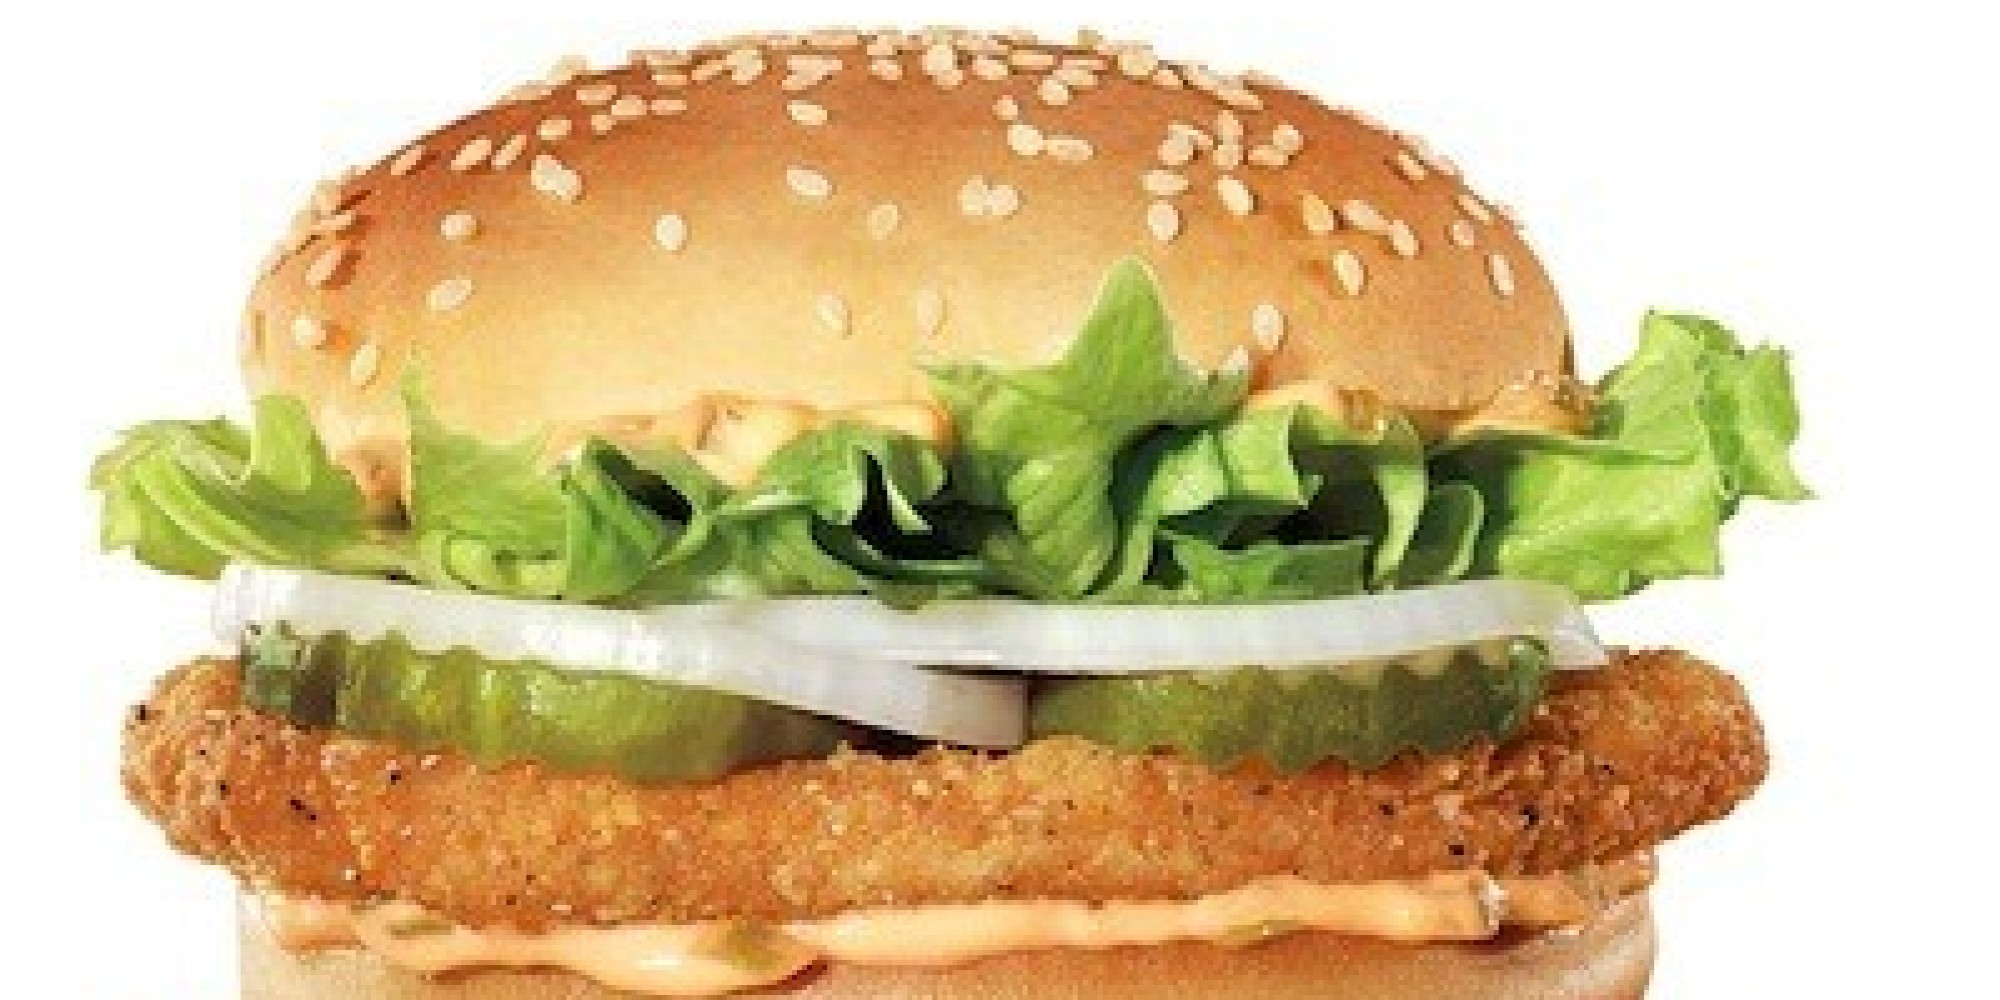 Burger king hatches chicken big king huffpost for Jack in the box fish sandwich